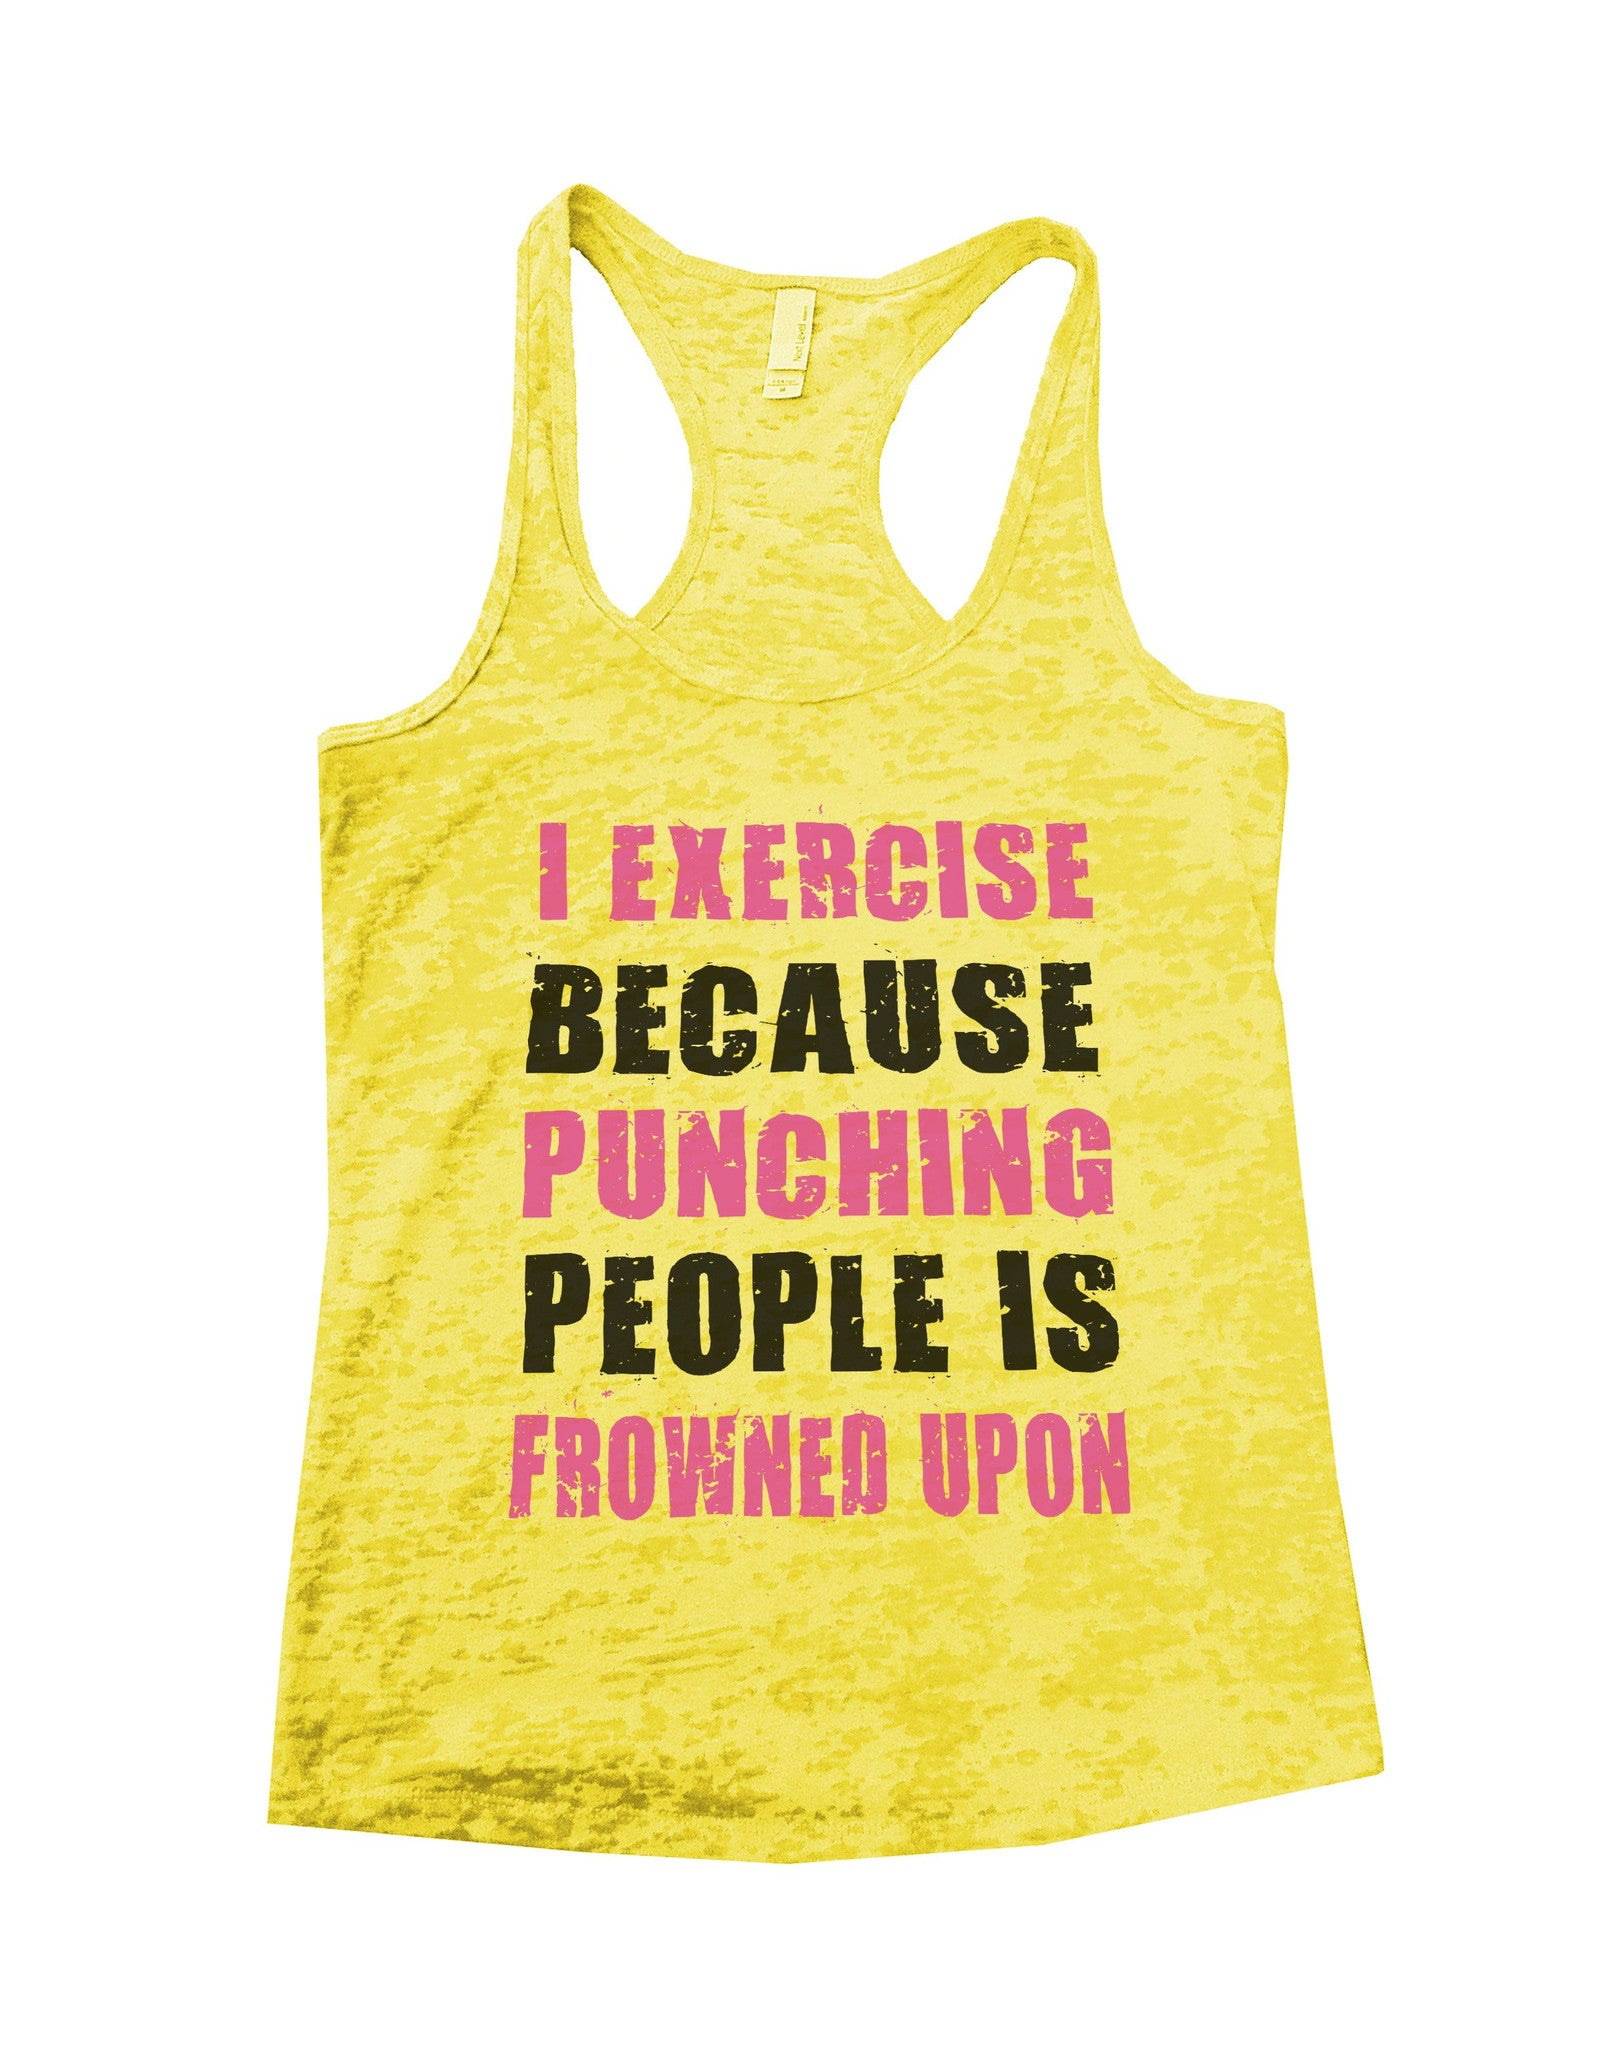 I Exercise Because Punching People Is Frowned Upon Burnout Tank Top By BurnoutTankTops.com - 718 - Funny Shirts Tank Tops Burnouts and Triblends  - 6